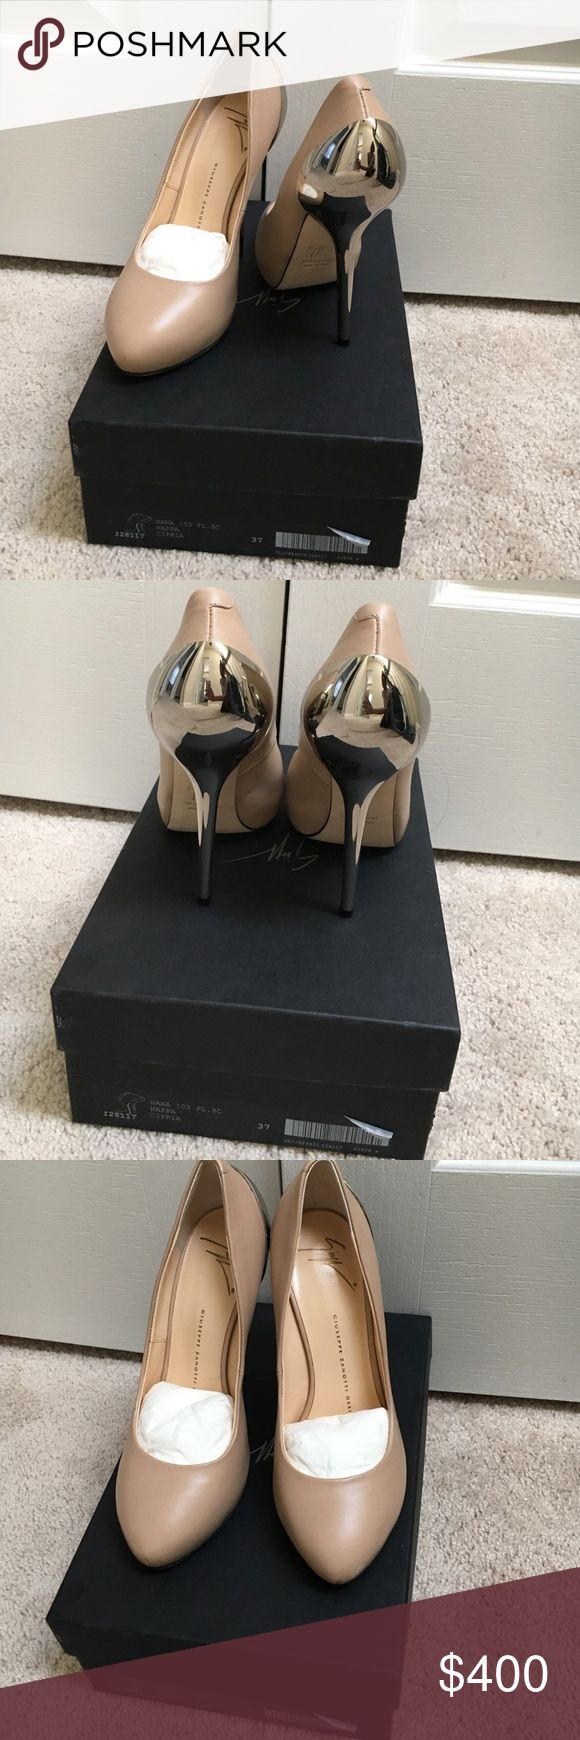 Giuseppe Zanotti Design Nana Beautiful nude pump with silver detail. Never worn, only tried on in the store and once in the house to pair with an outfit. Comes with original box and shoe bags. Giuseppe Zanotti Shoes Heels